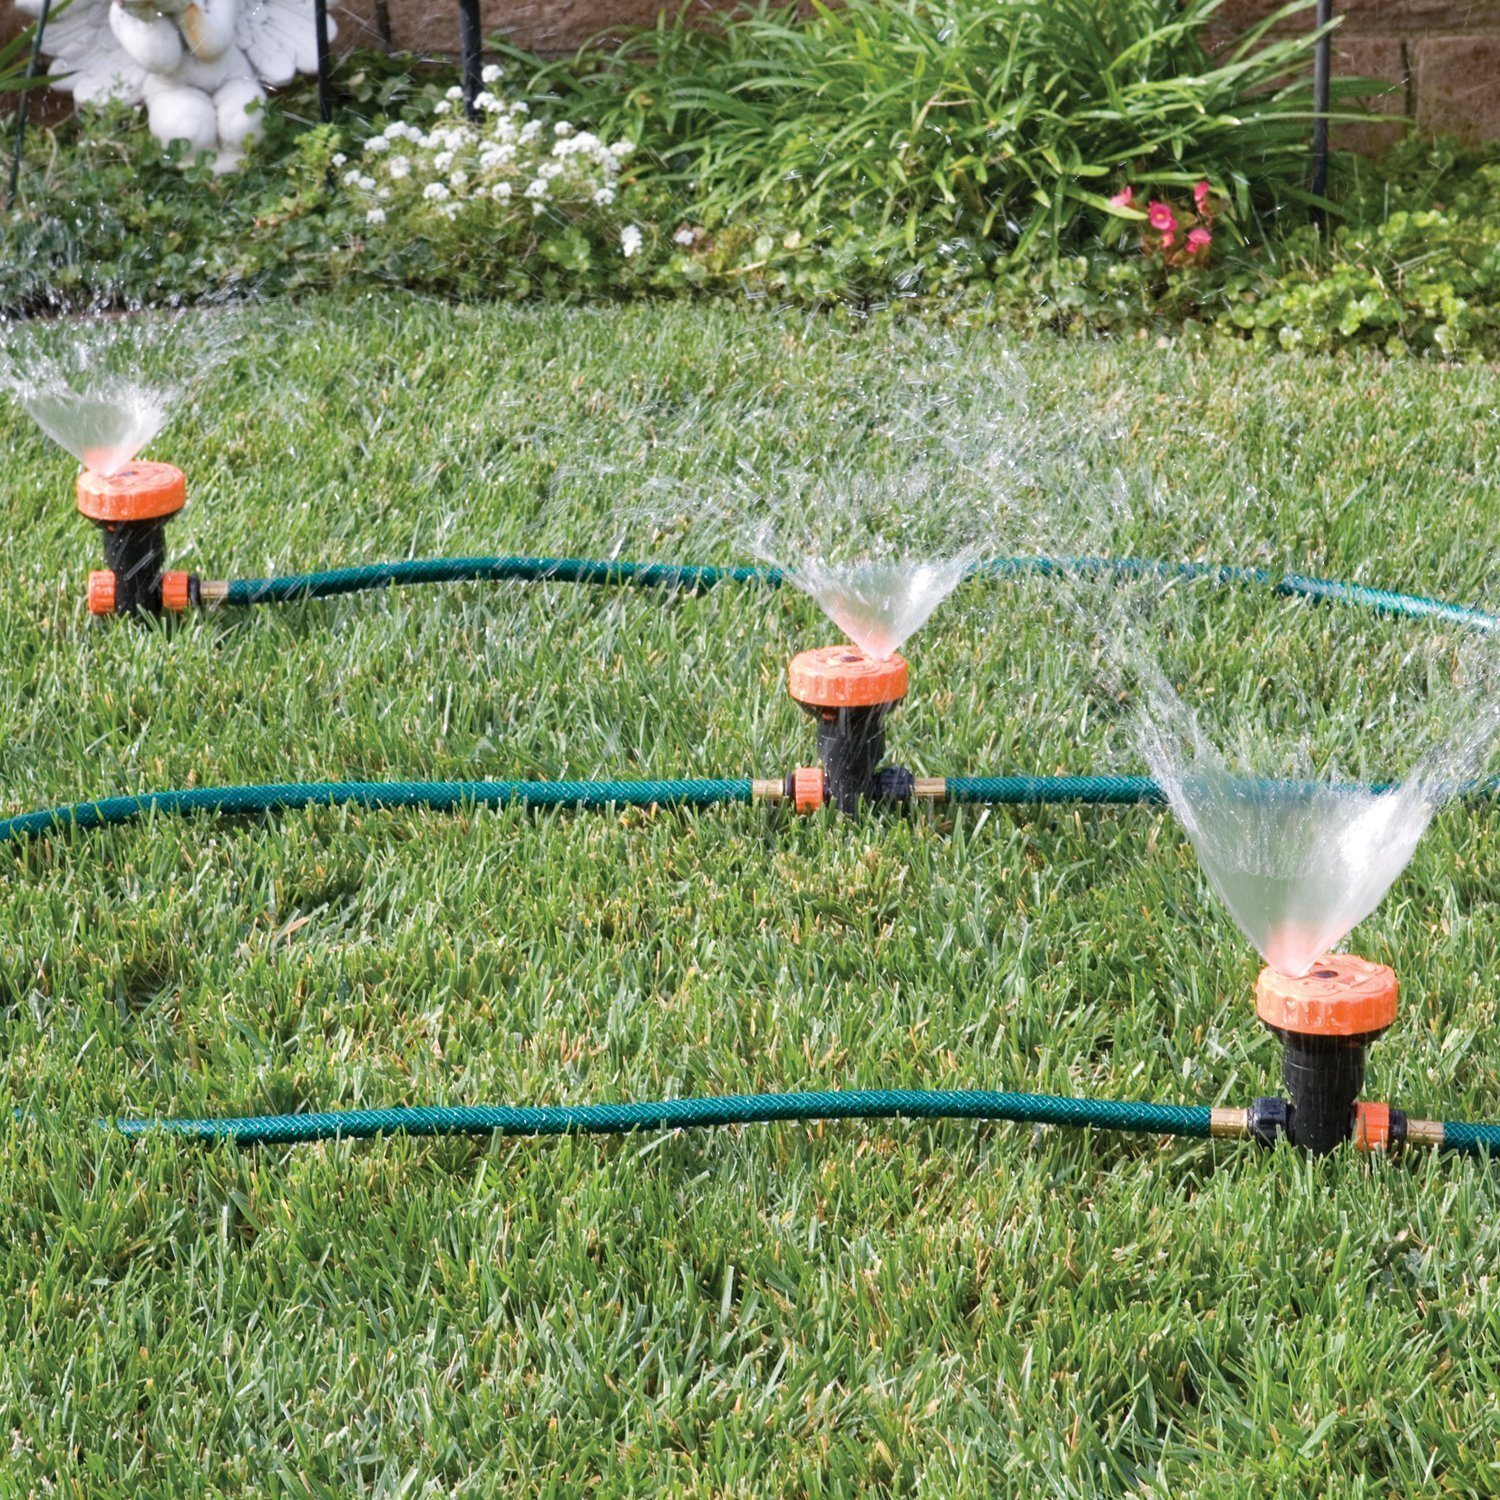 Delicieux Amazon.com : 3 In 1 Portable Sprinkler System With 5 Spray Settings : Lawn  And Garden Sprinklers : Garden U0026 Outdoor